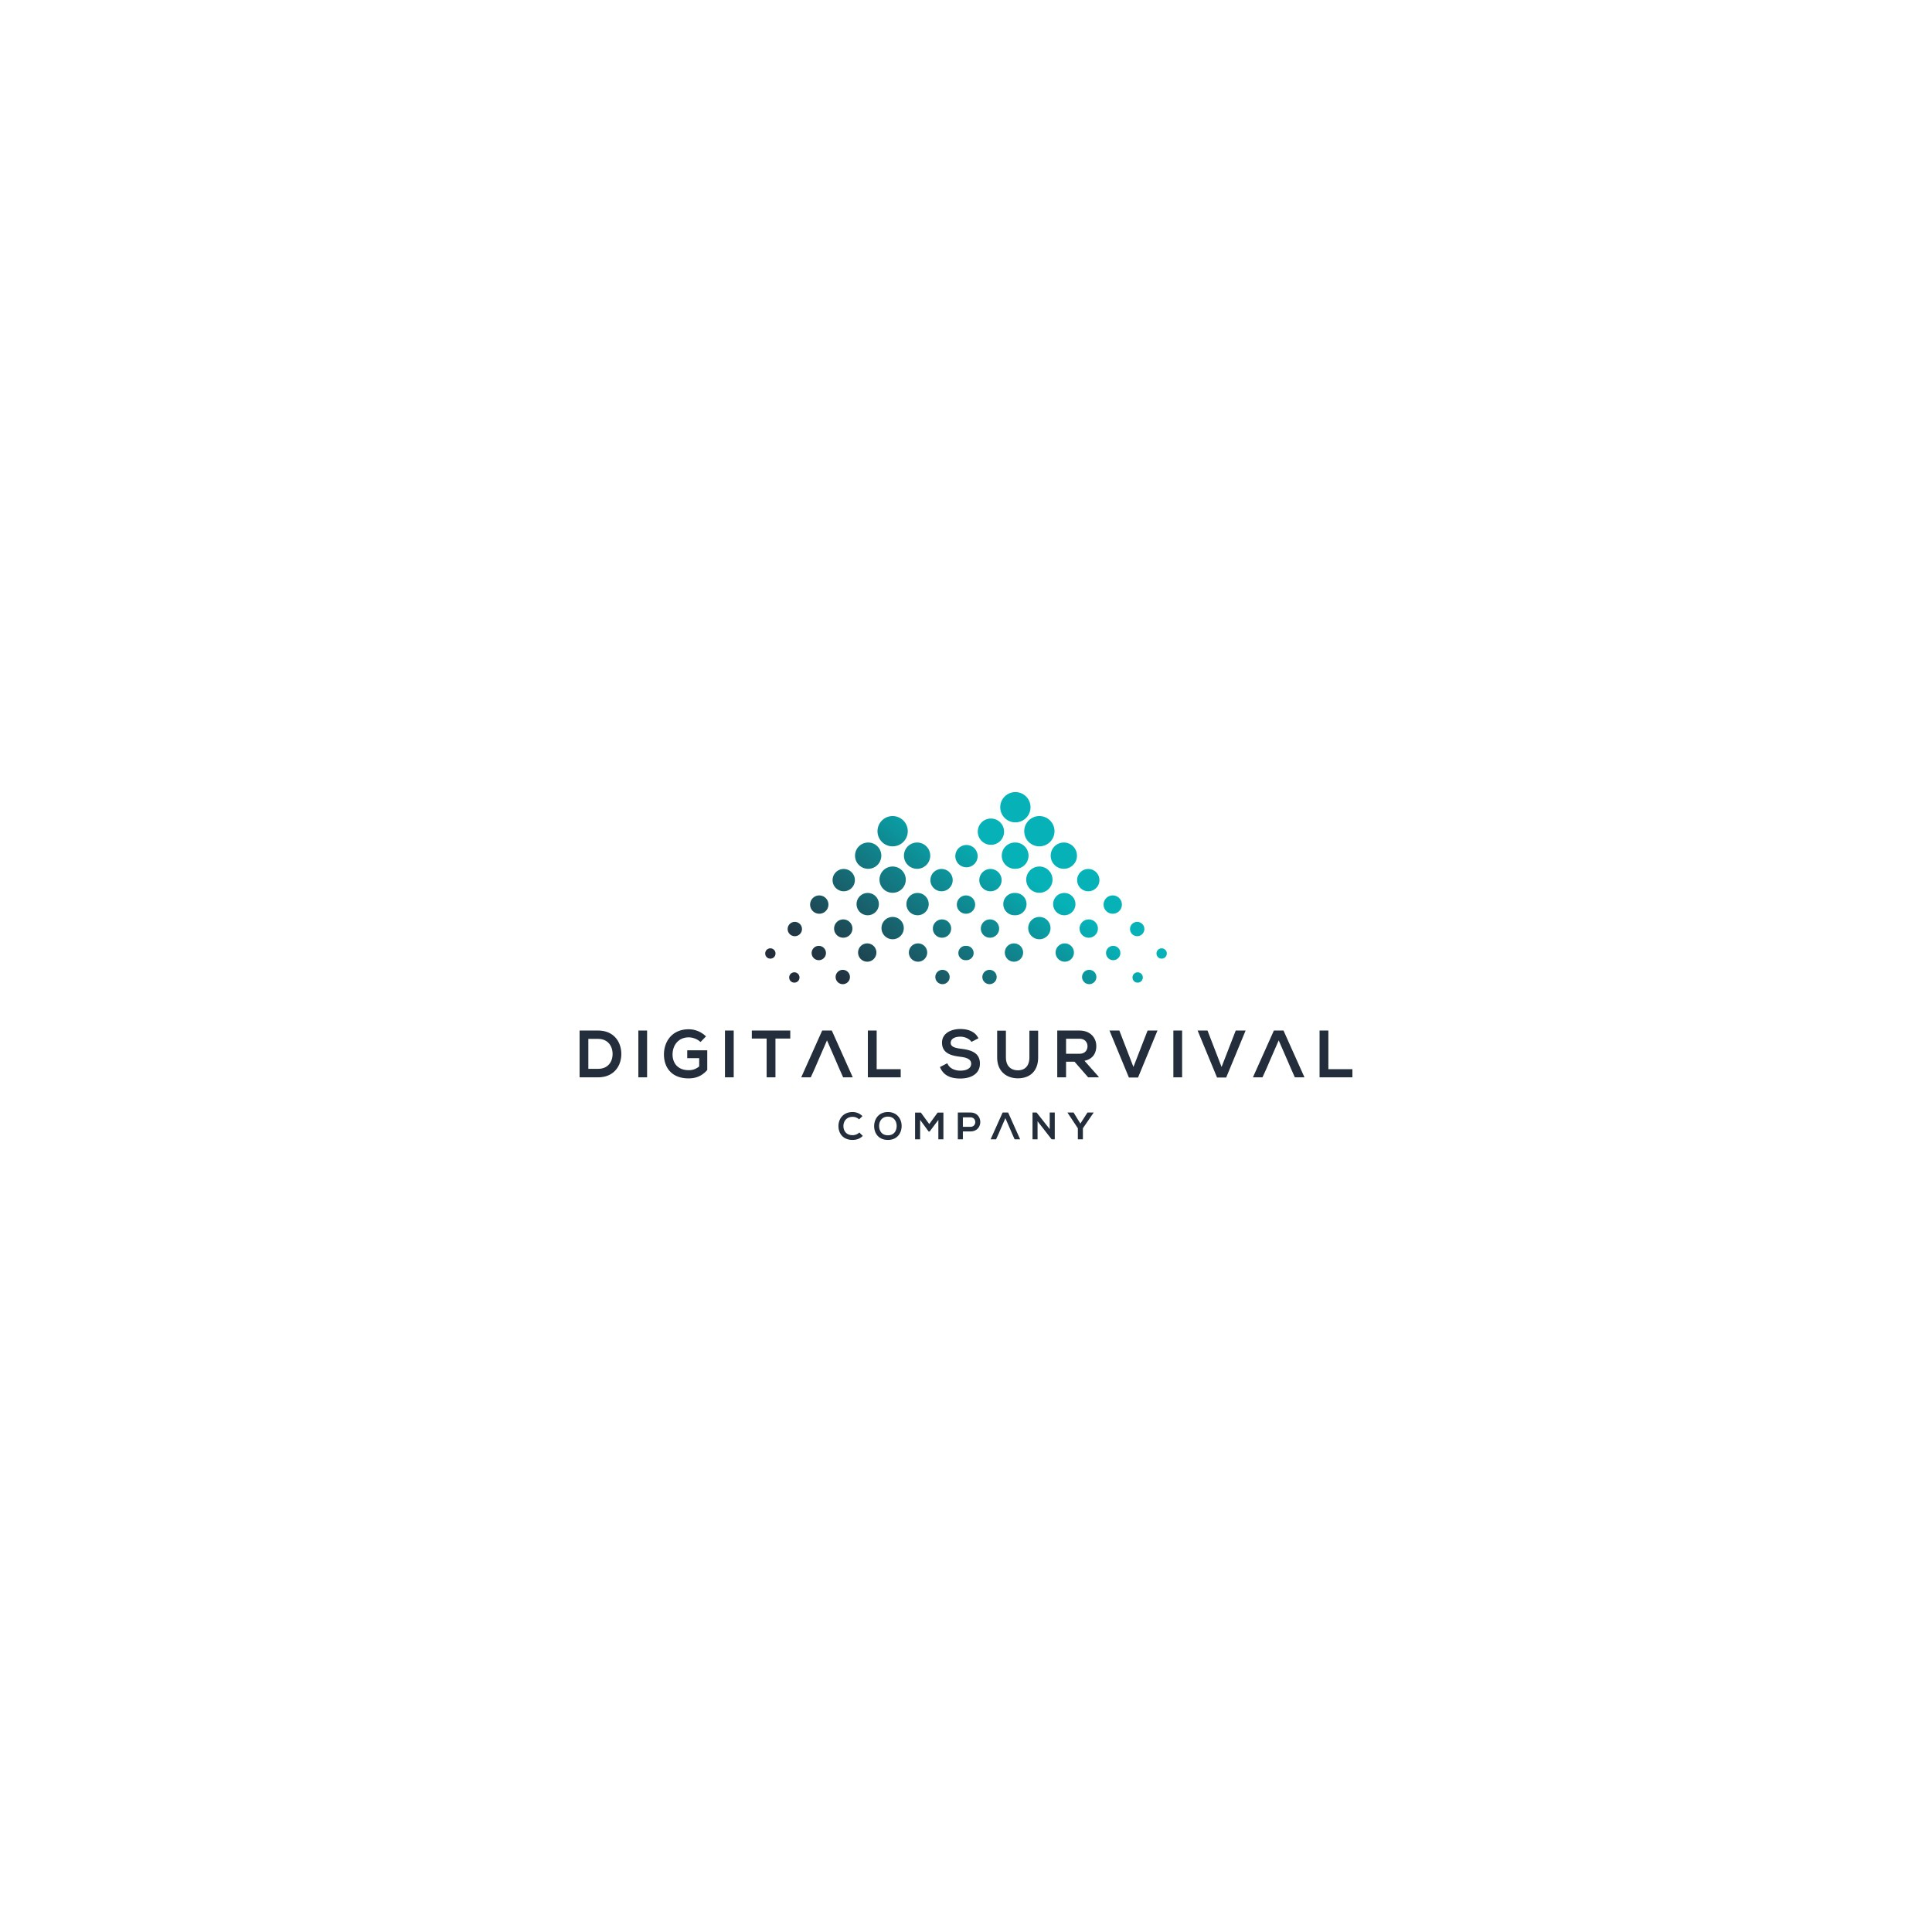 Digital Survival Company is looking for a powerful logo